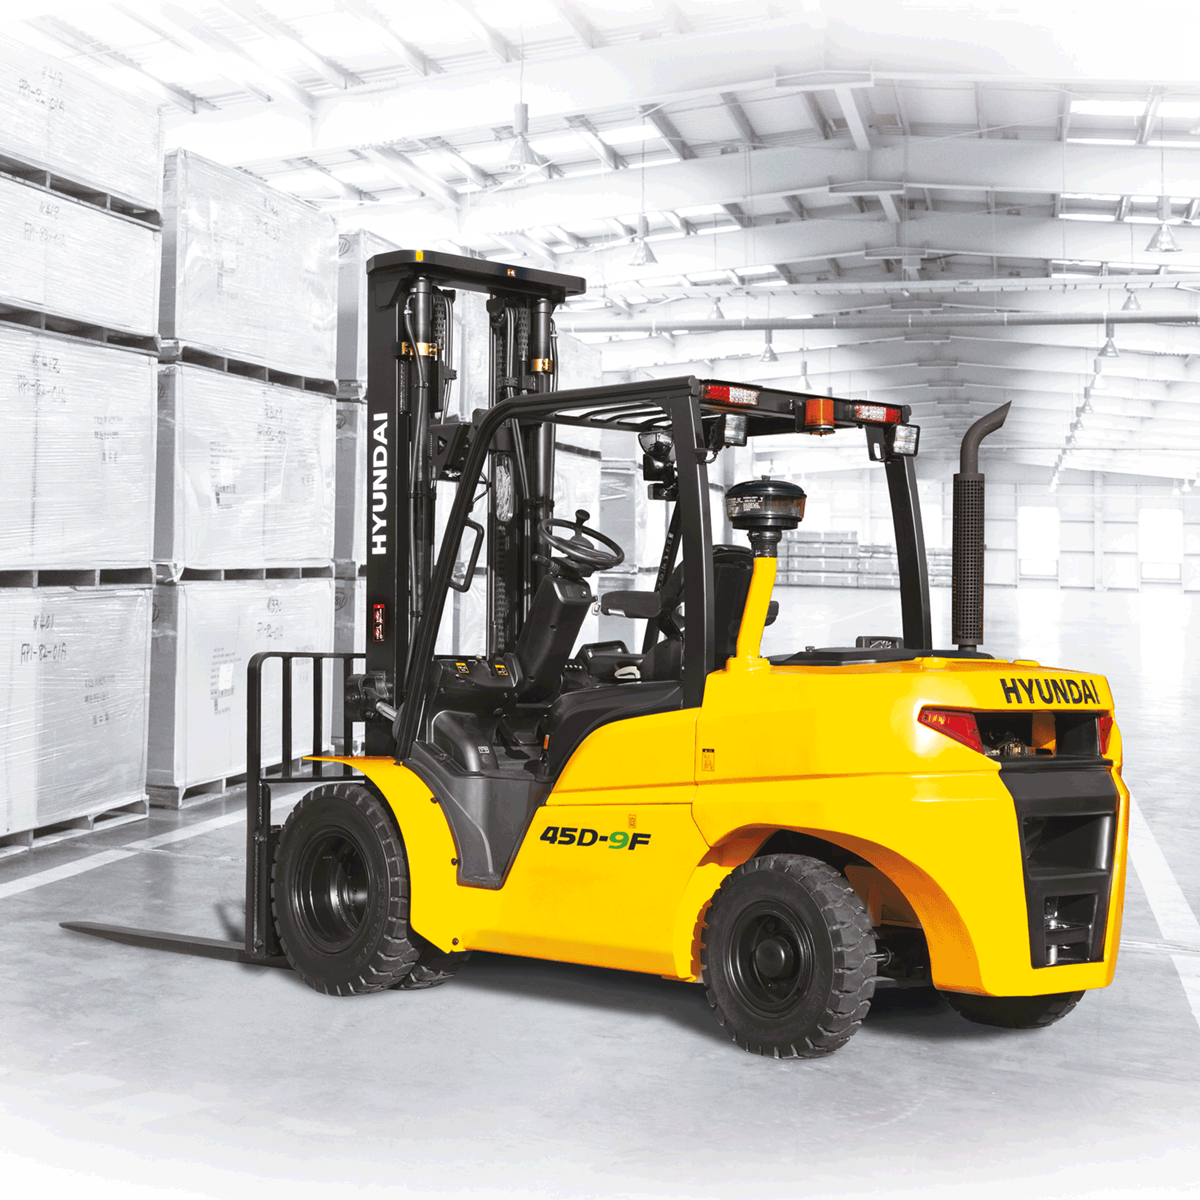 Hyundai 45d-9f forklift grey background left side view